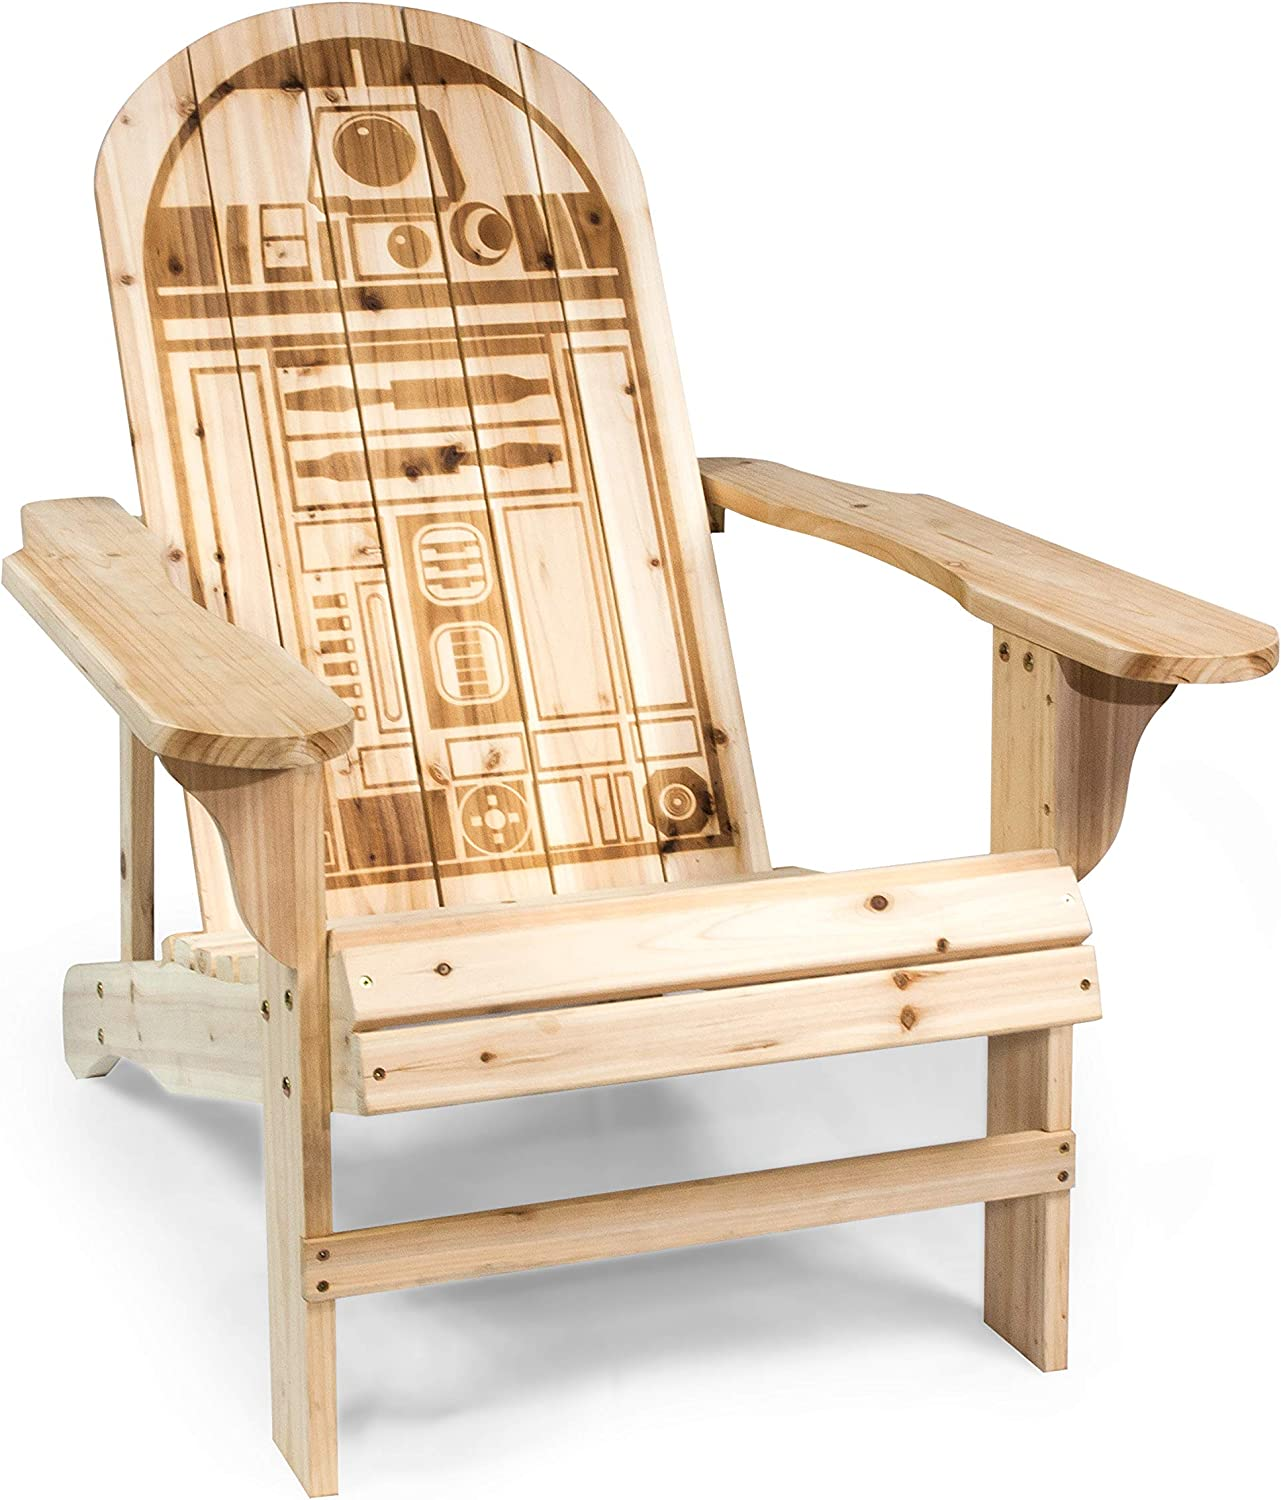 Seven20 SW10723 Star Wars R2-D2 Adirondack Chair, None